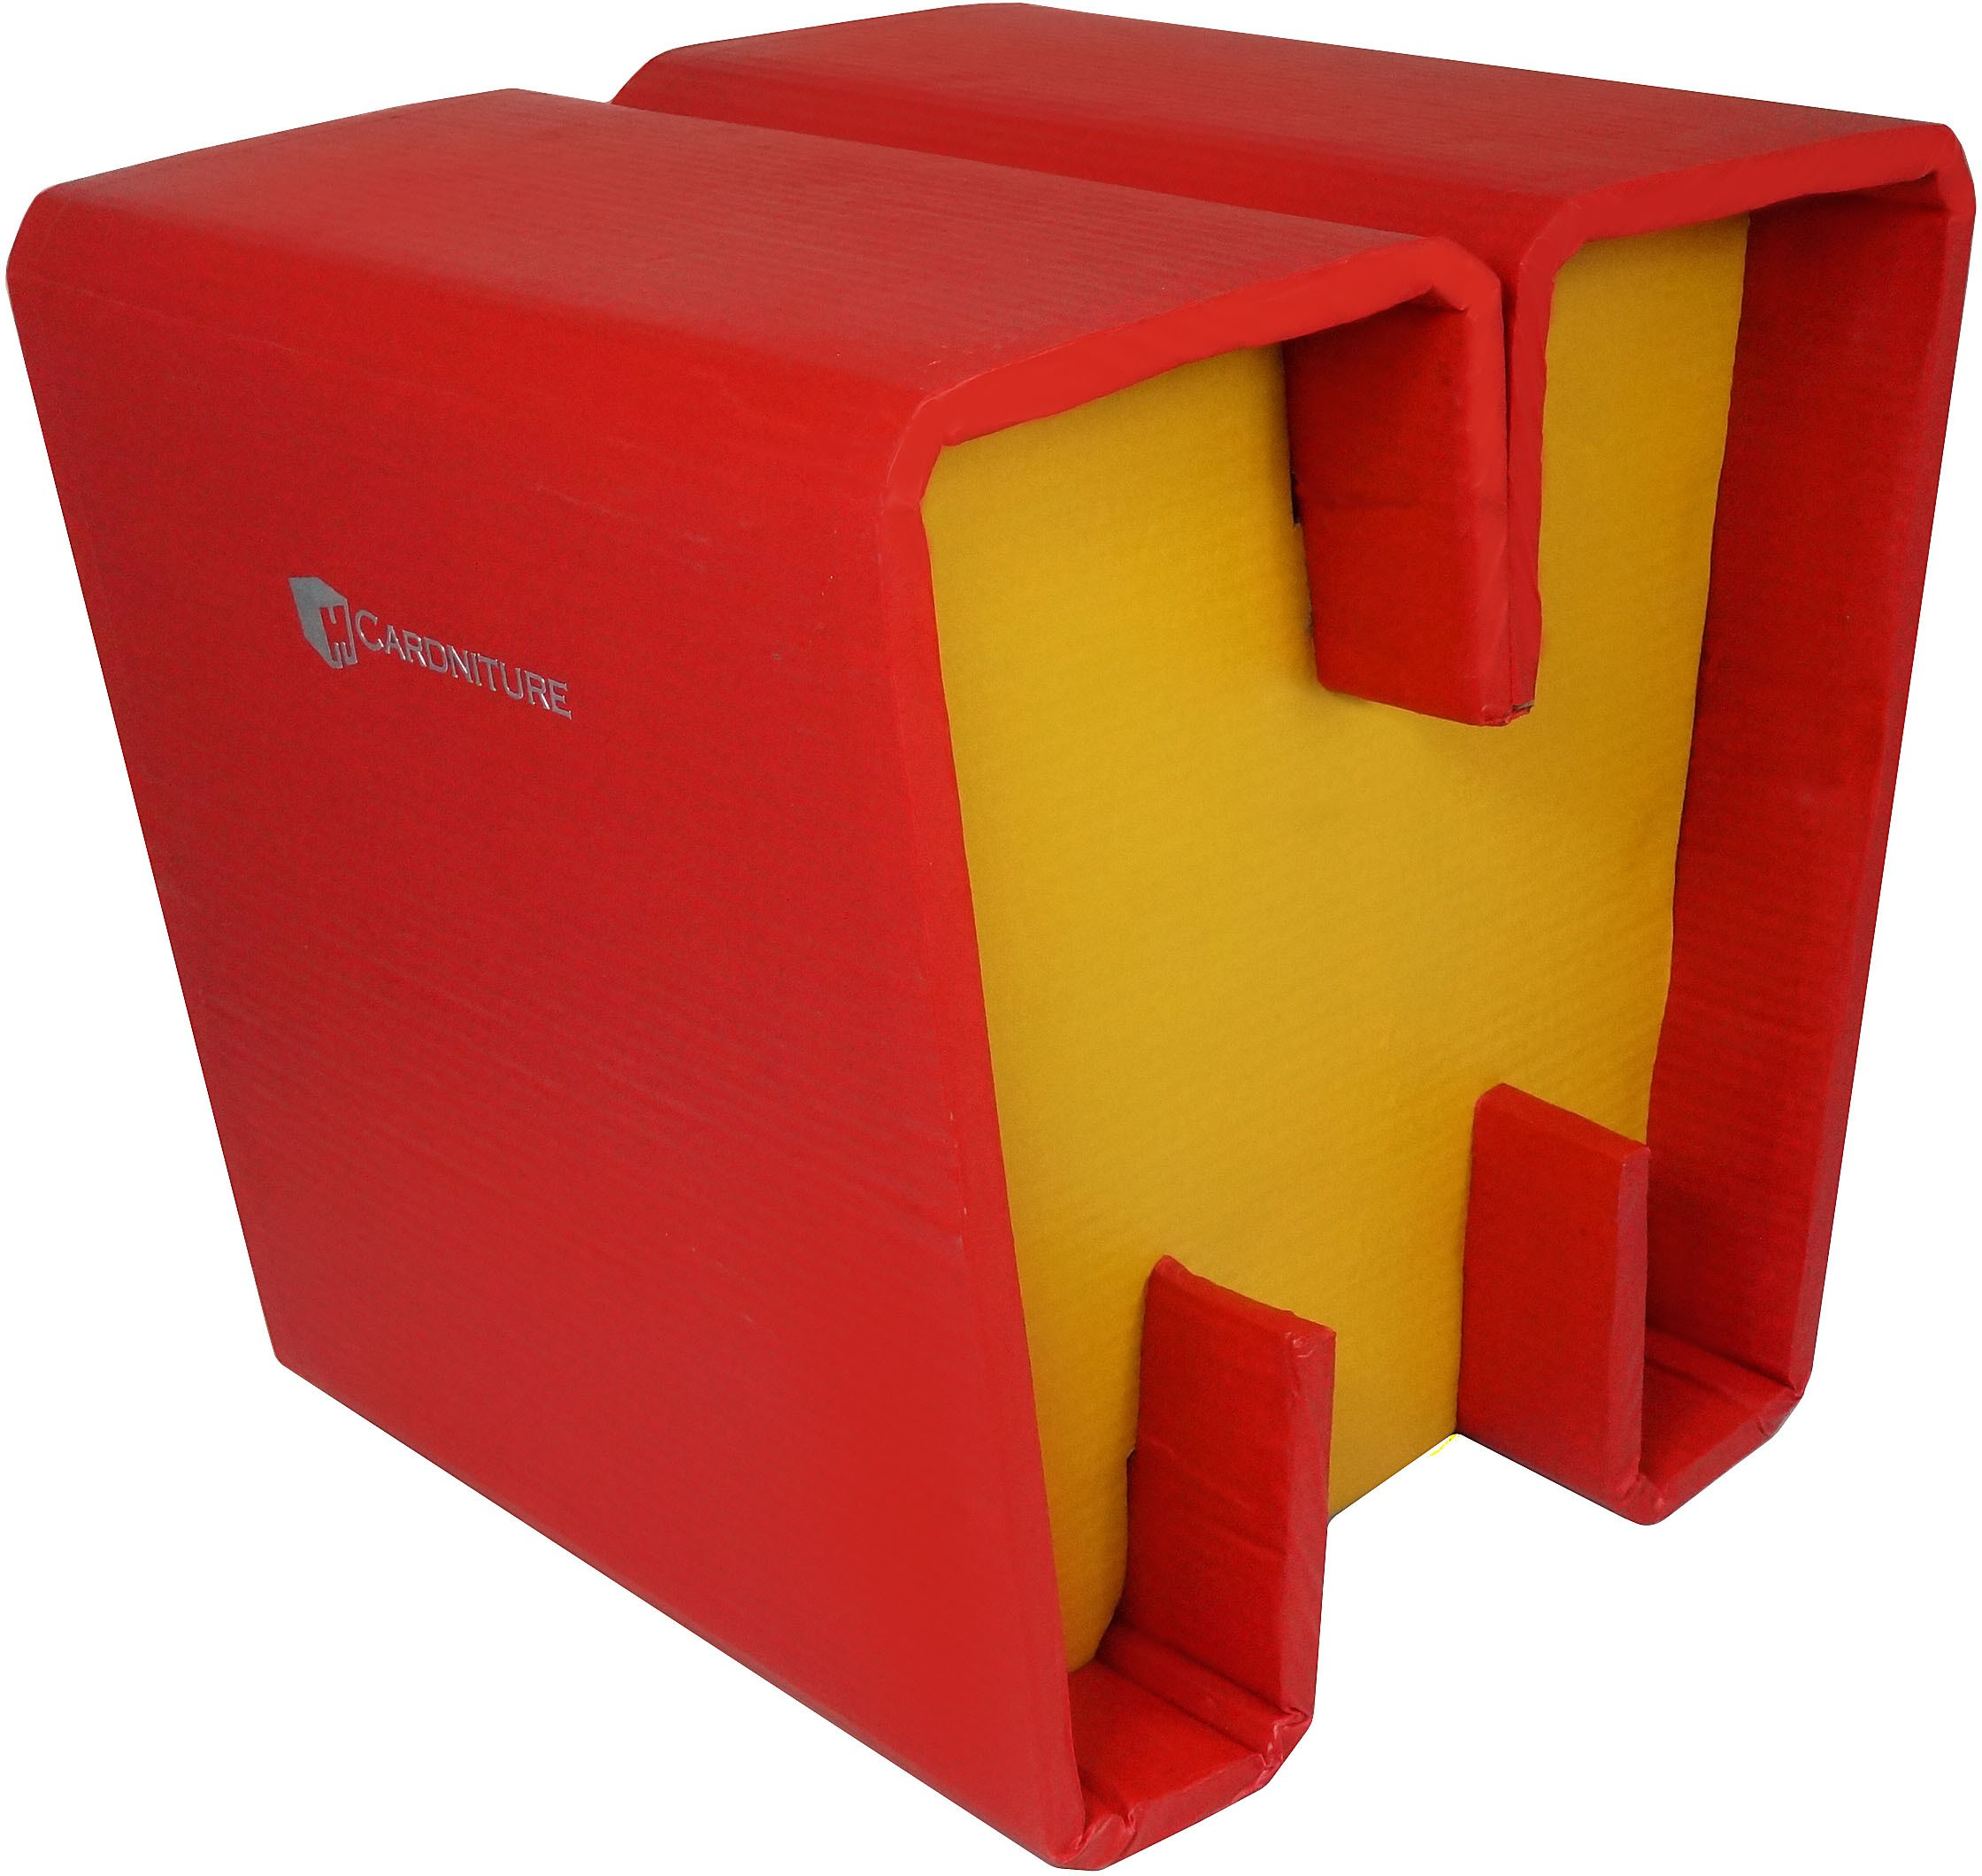 View Cardniture ZING Living & Bedroom Stool(Red, Yellow) Furniture (Cardniture)